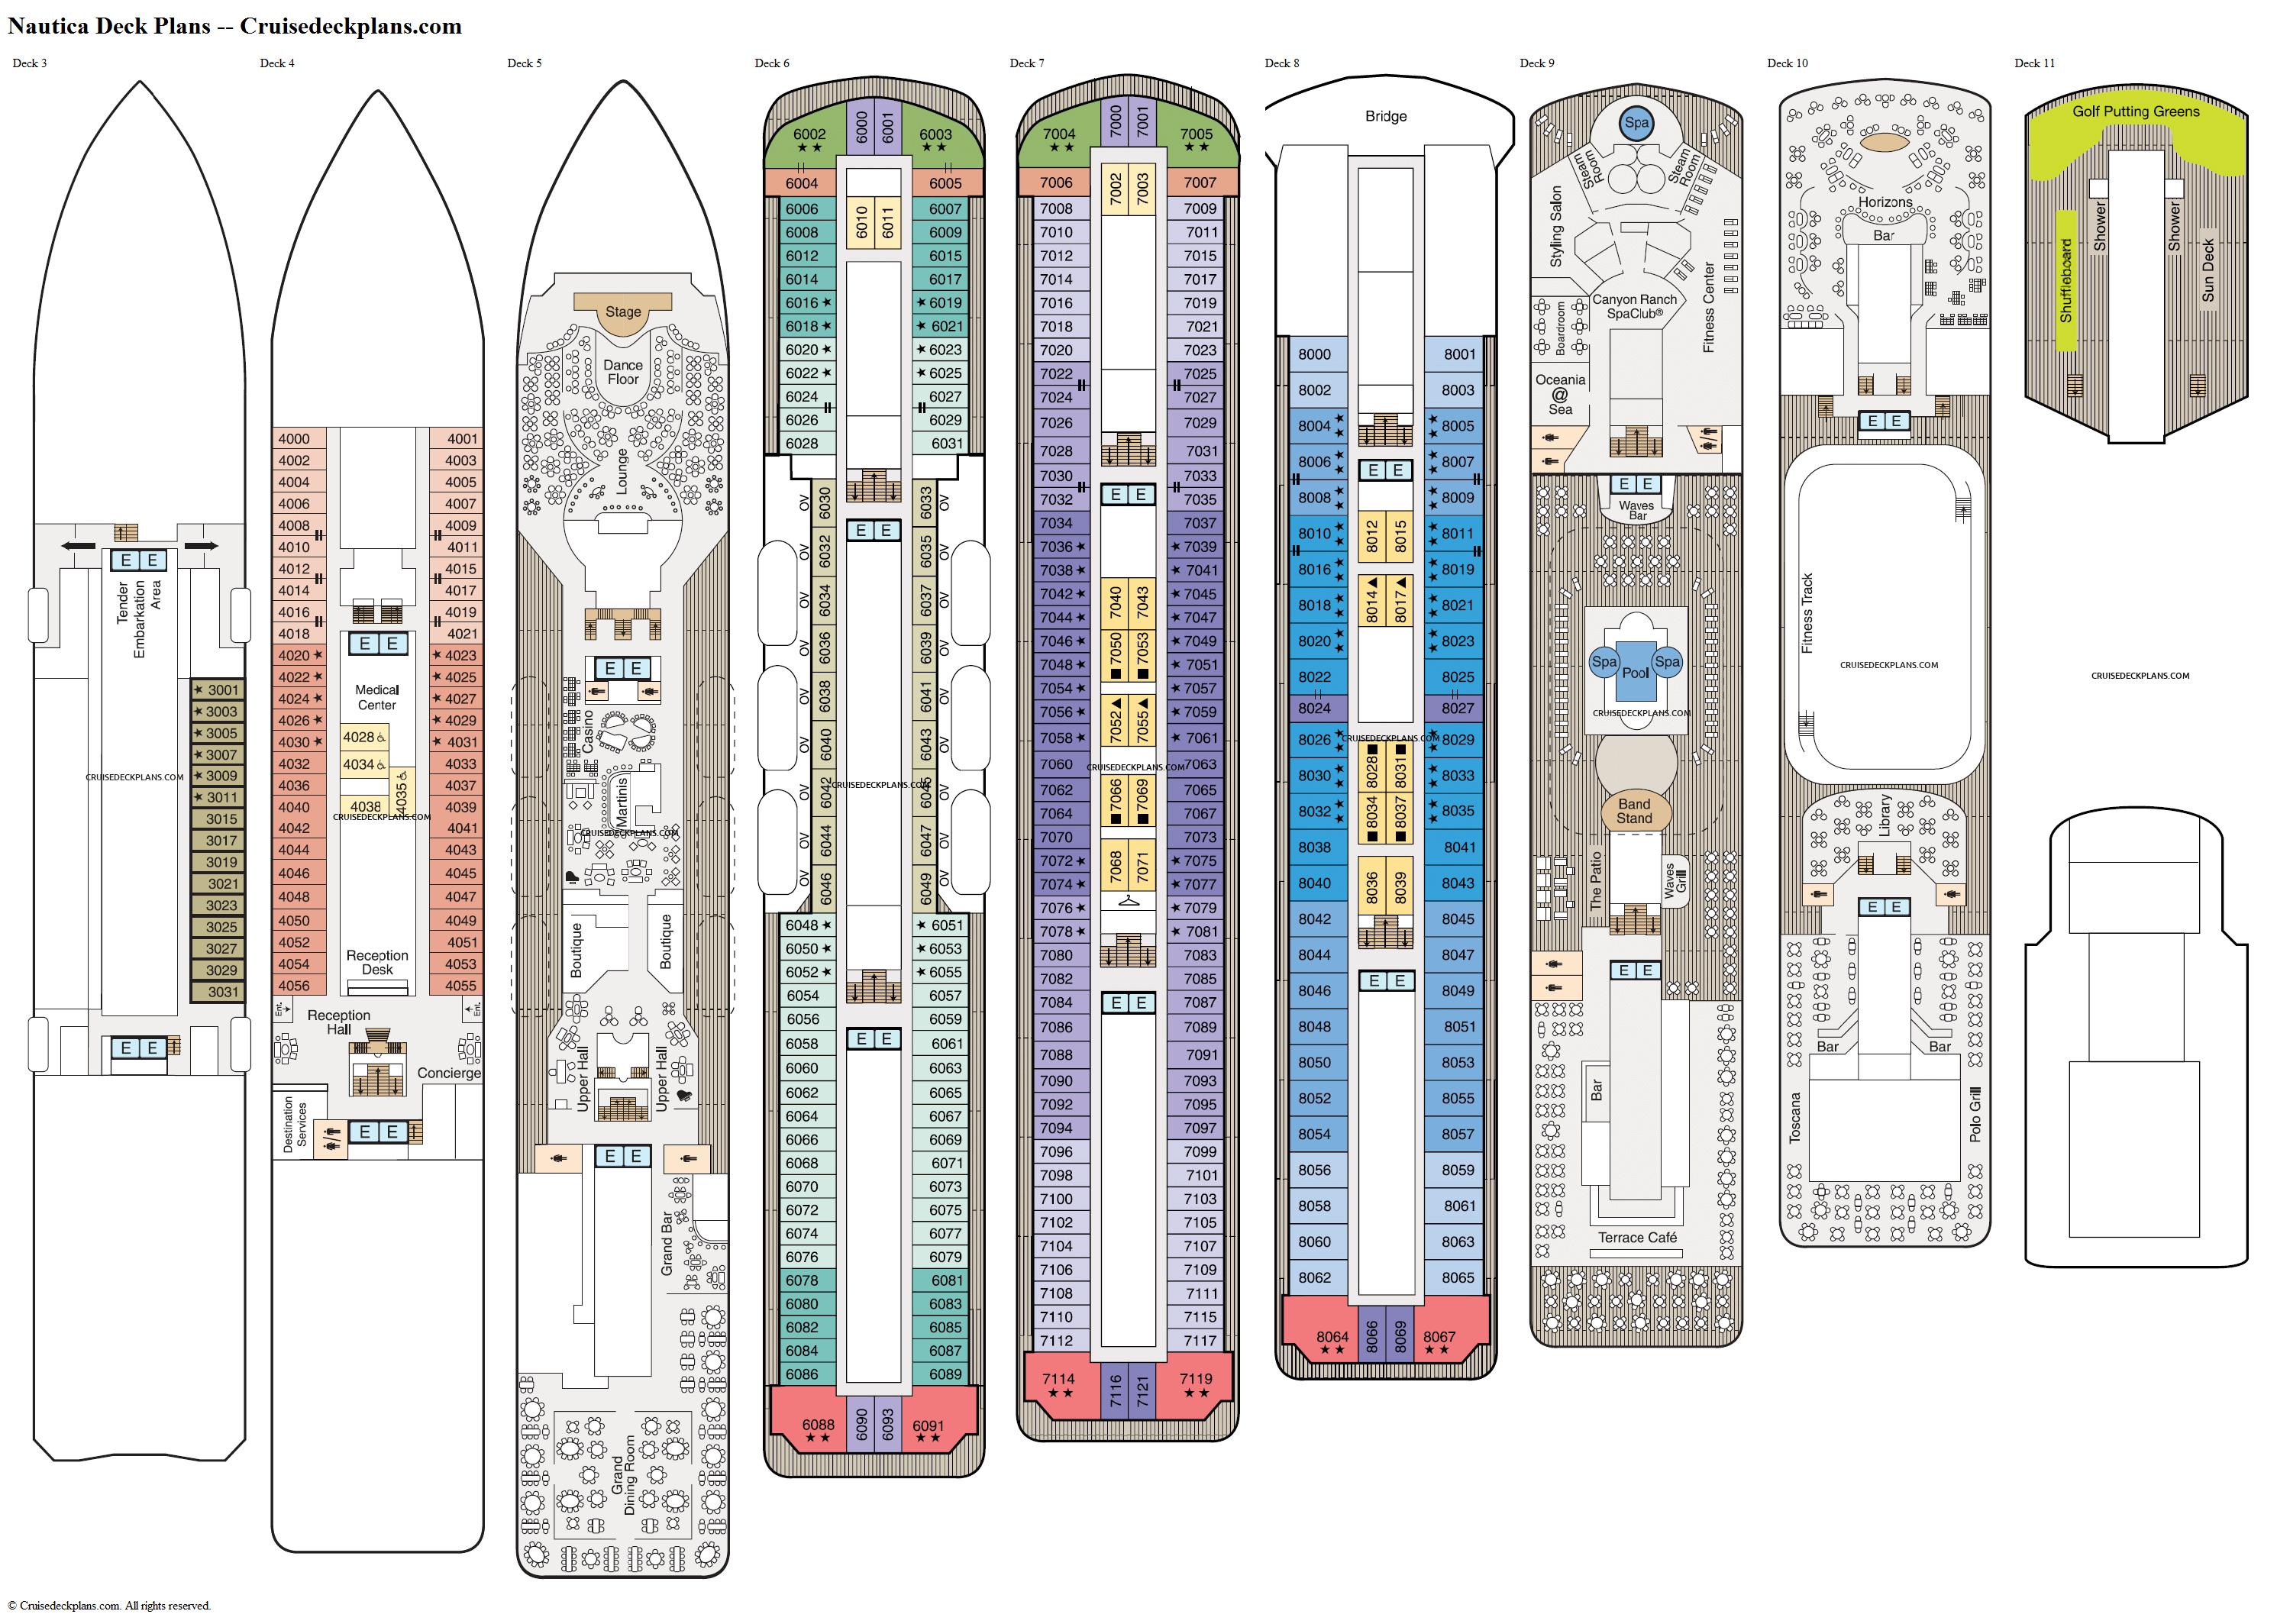 Nautica deck plans image